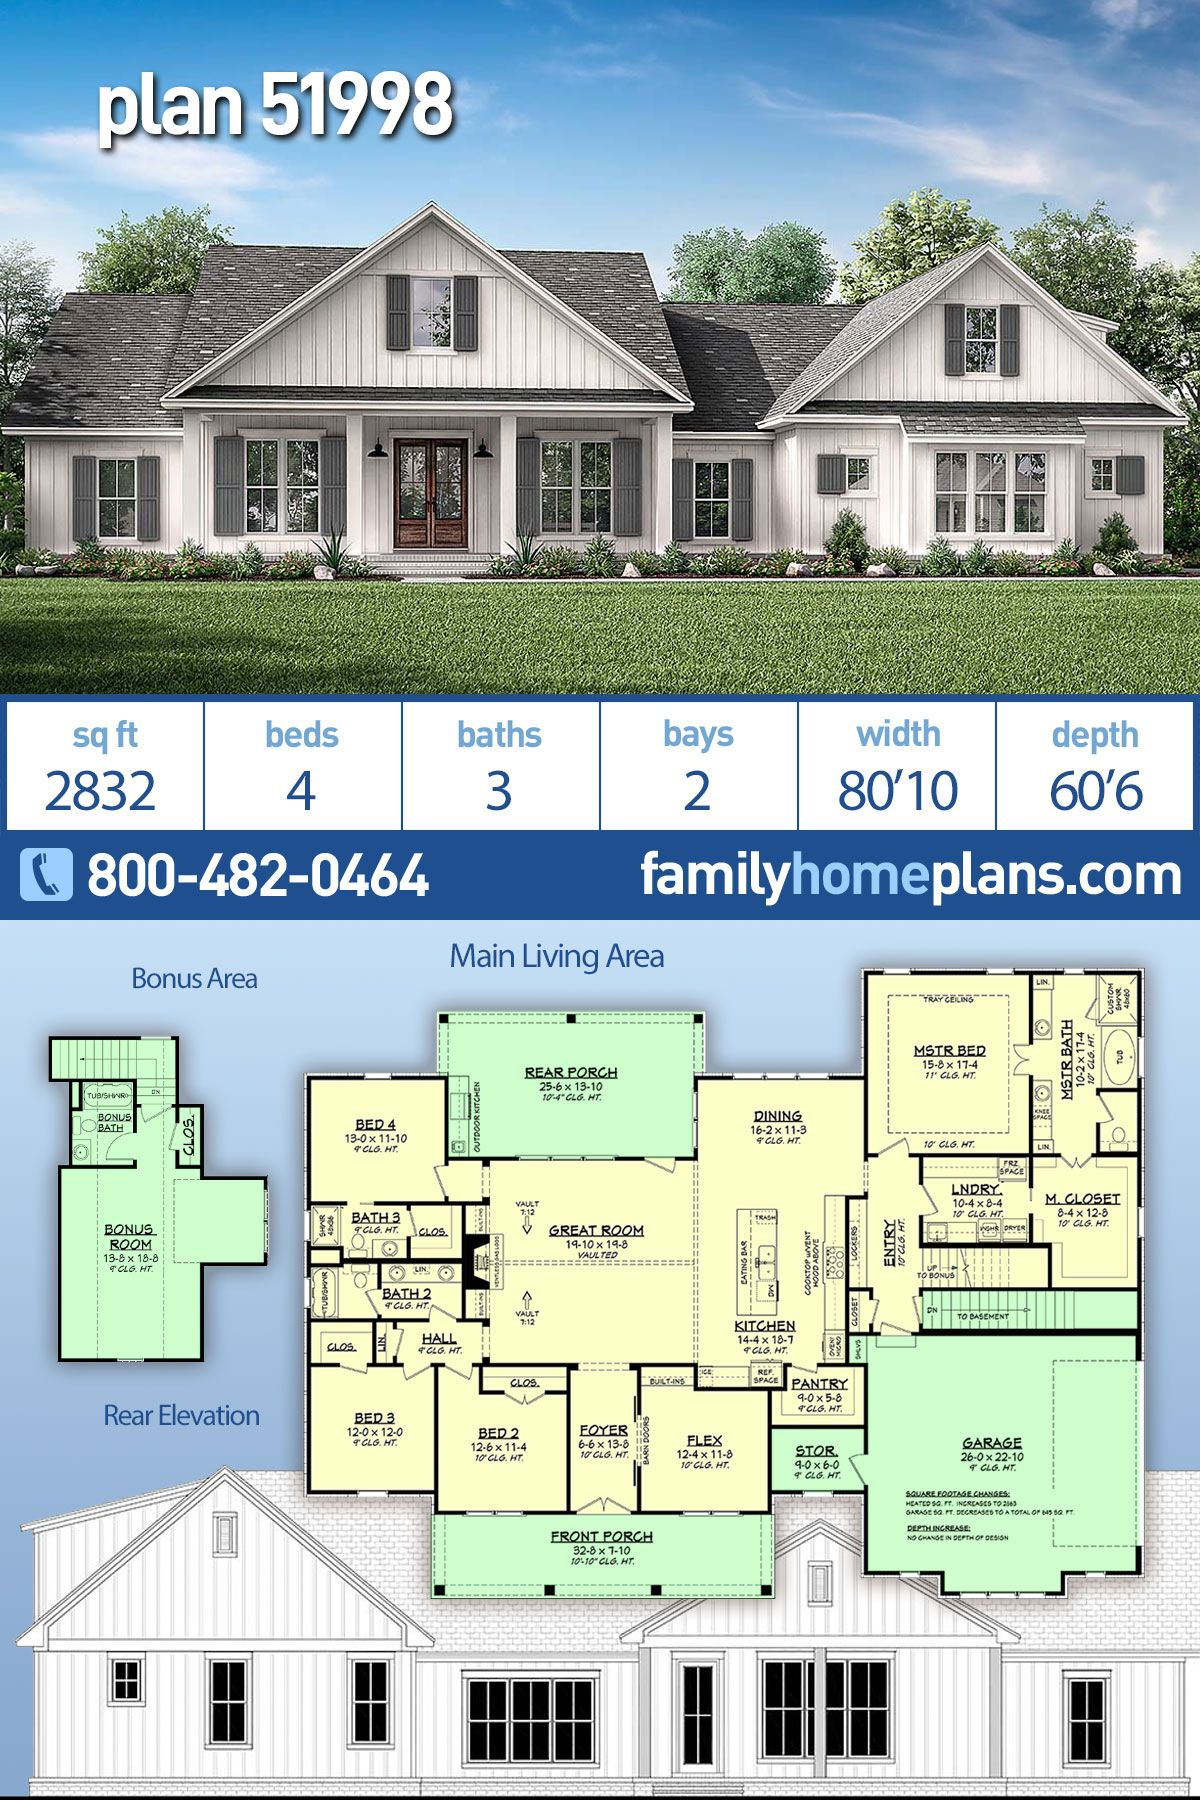 Southern Style House Plan 51998 With 4 Bed 3 Bath 2 Car Garage Family House Plans House Plans Farmhouse Dream House Plans